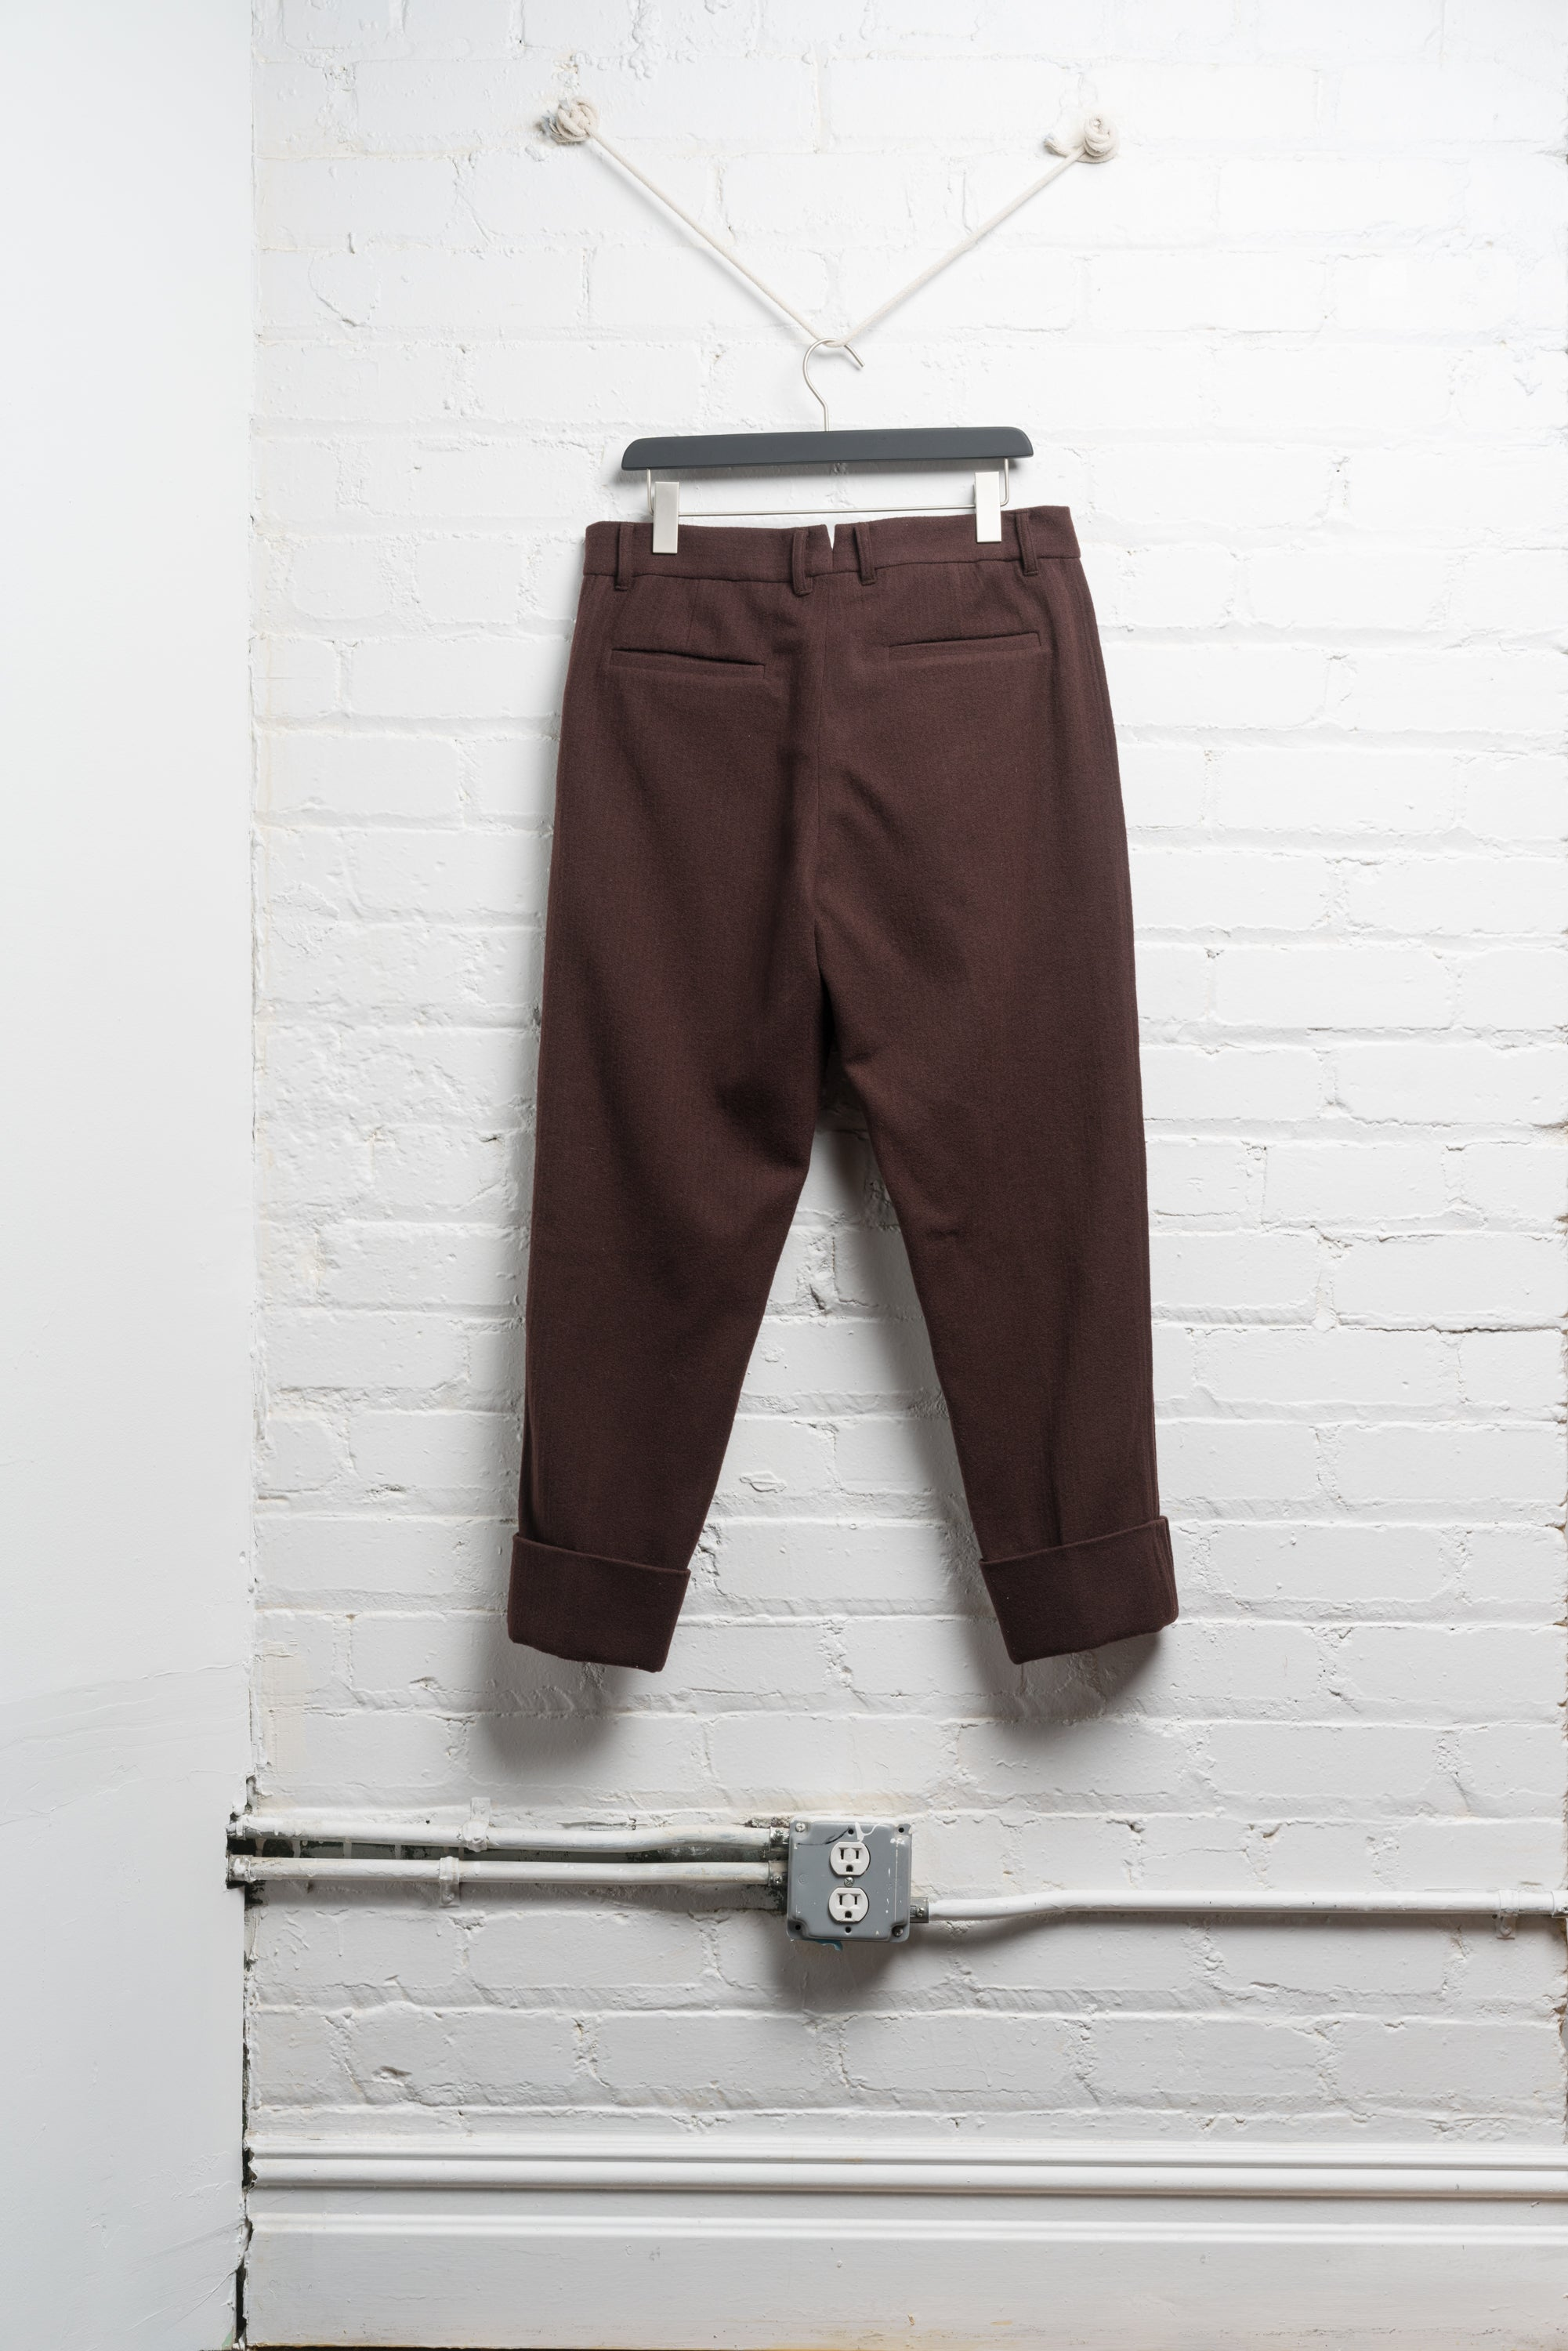 CUFFED WOOL TROUSER IN BORDEAUX BRUSHED TWILL